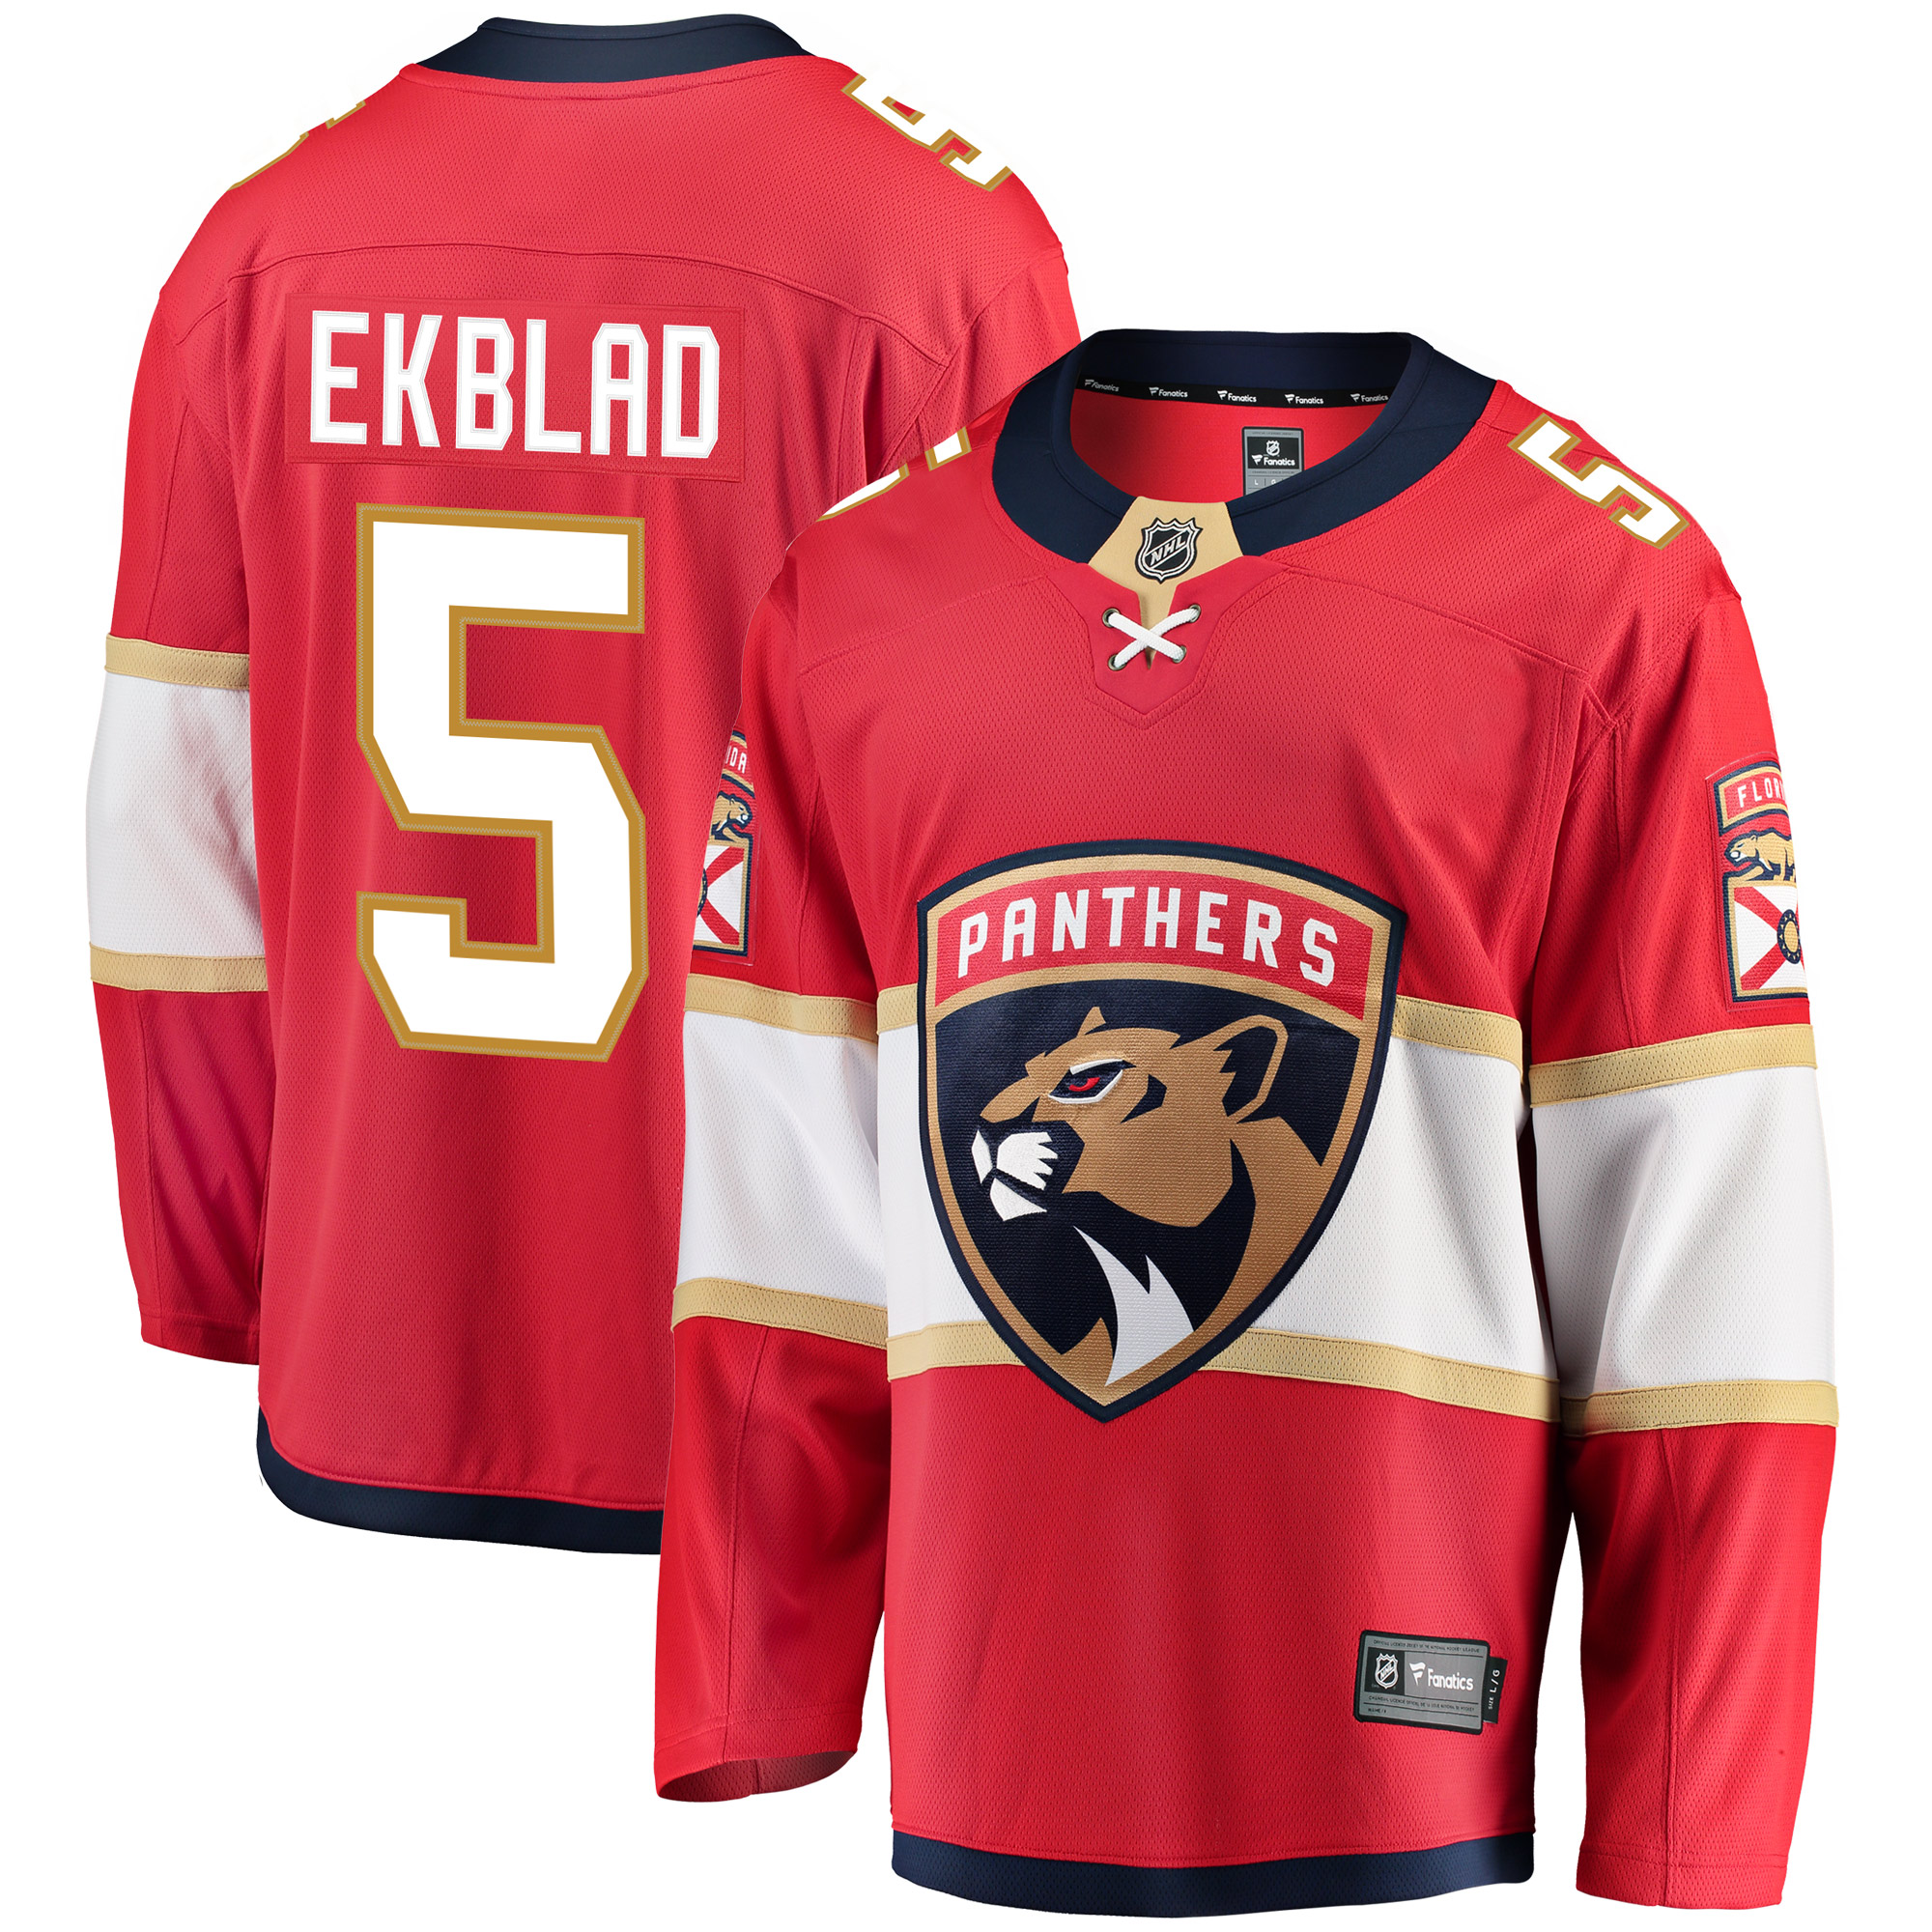 Aaron Ekblad Florida Panthers Fanatics Branded Breakaway Player Jersey - Red